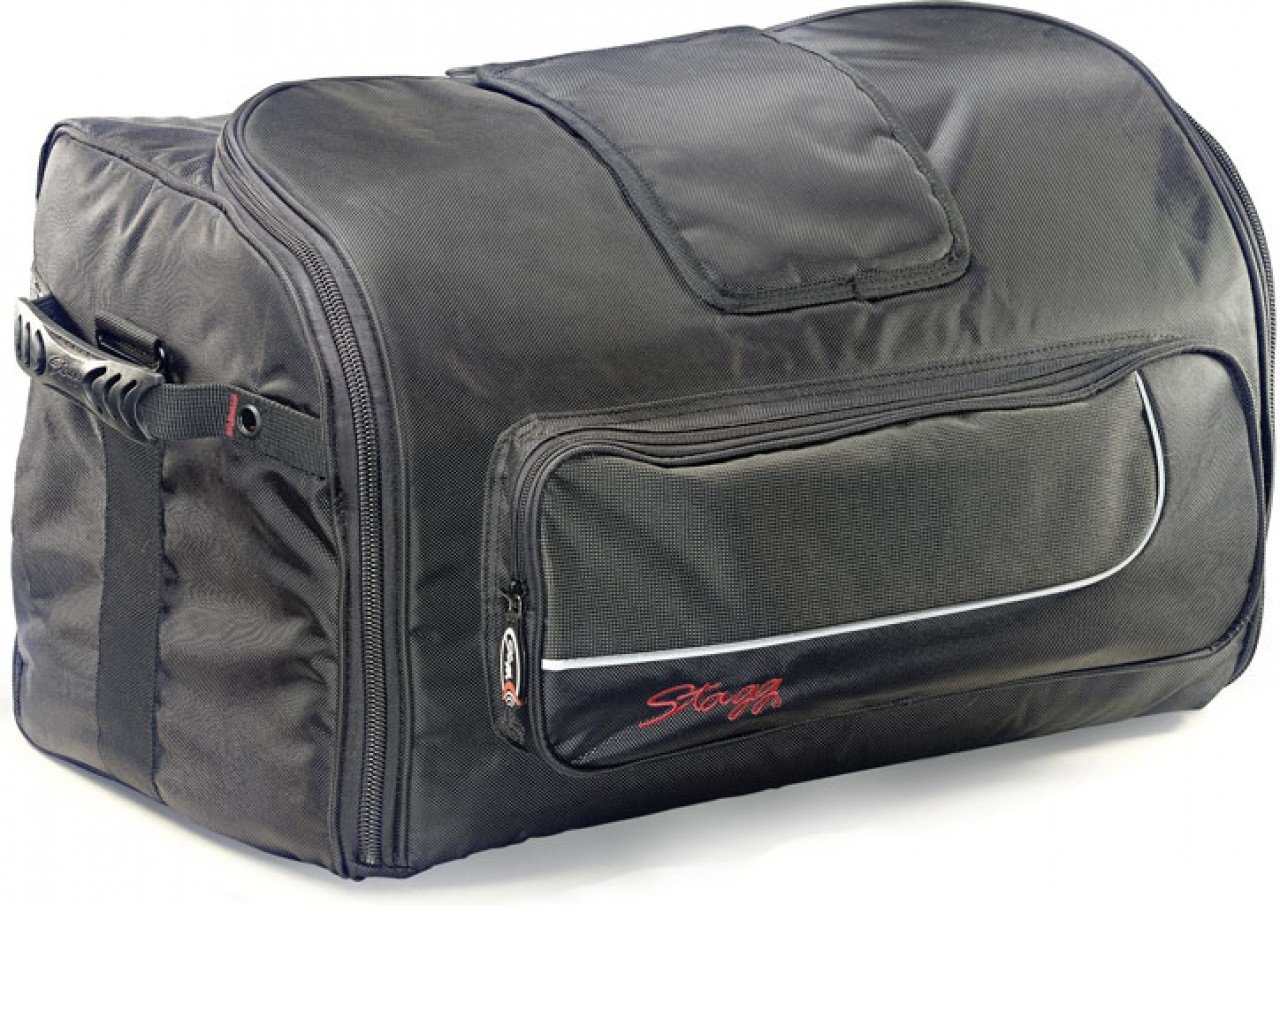 Stagg SPB-10 Padded Nylon Carrier Bag for 10-Inch Molded Speaker - Black